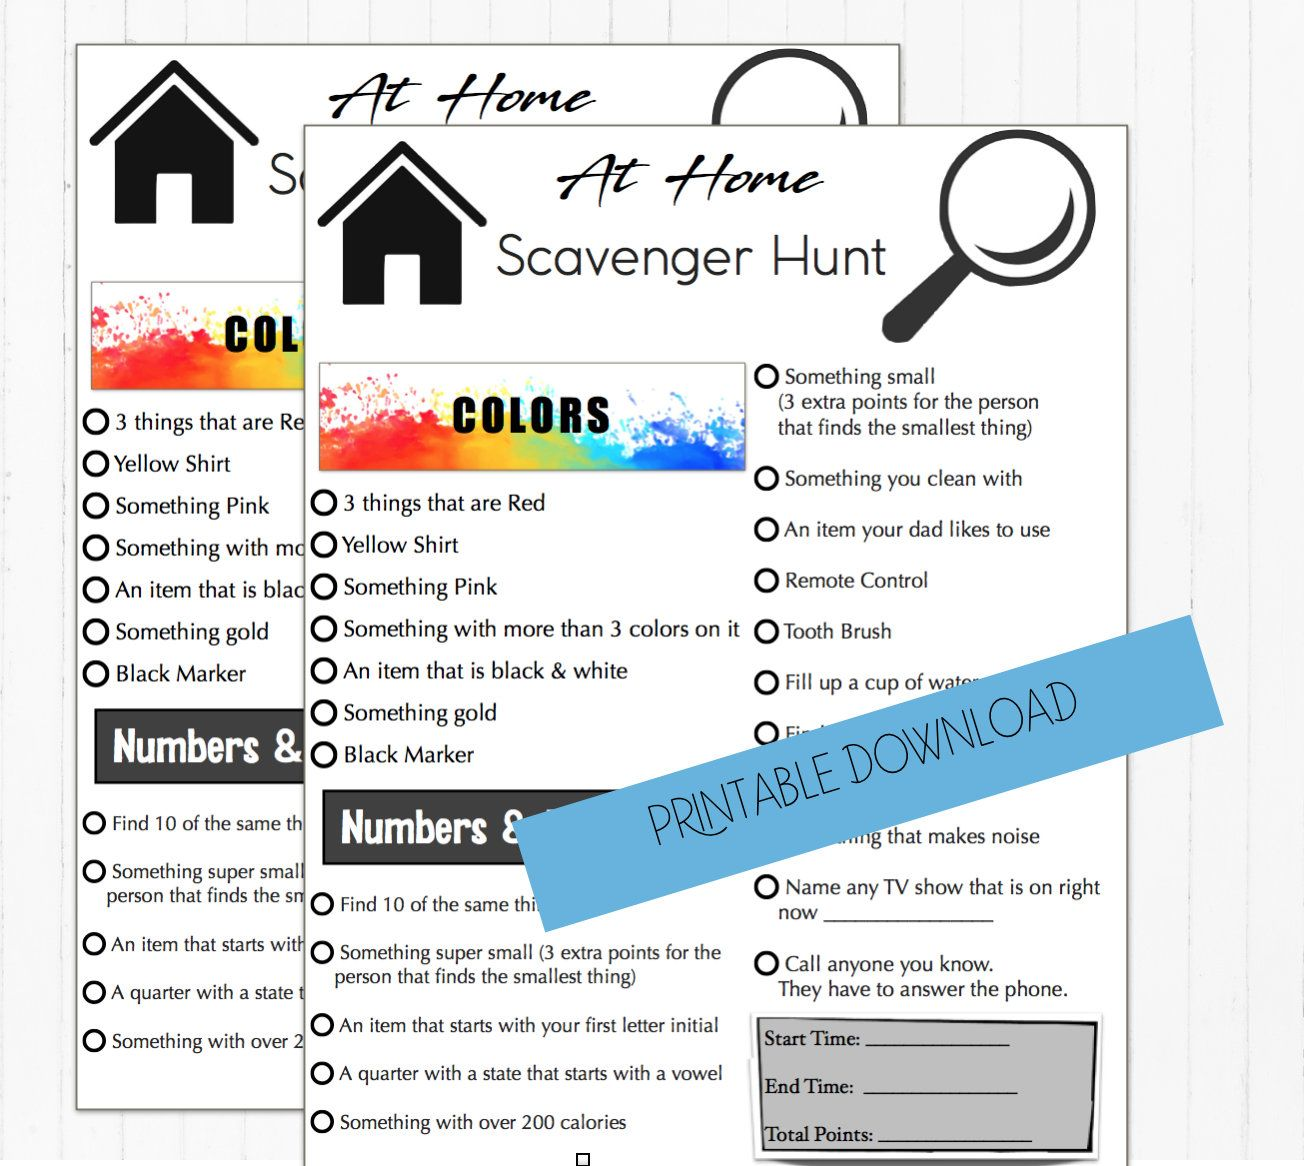 At home scavenger hunt game, Play with family or friends